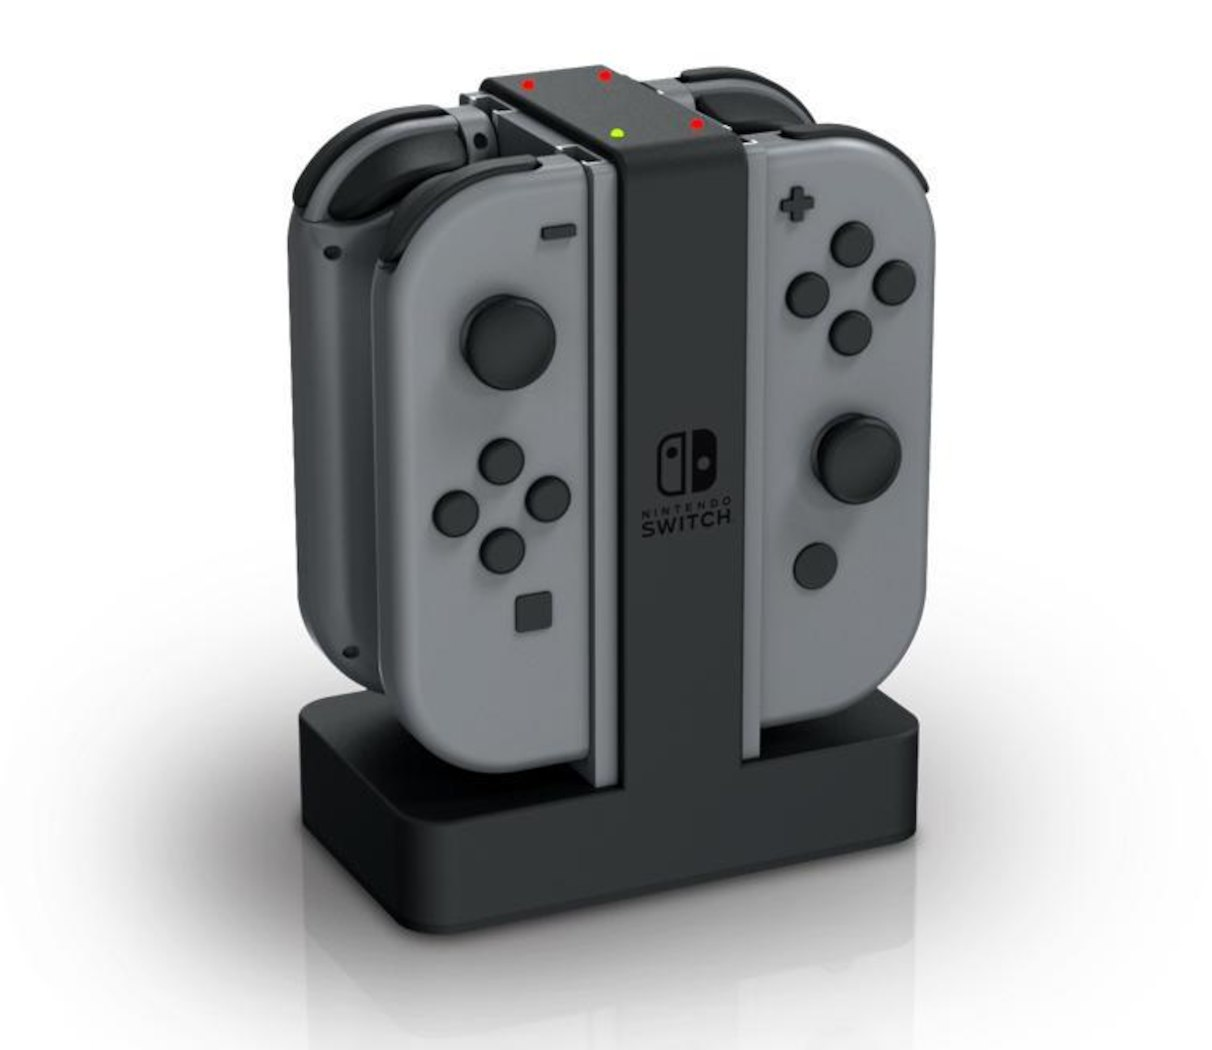 PowerA's Joy-Con charging dock for Nintendo Switch. ($18)